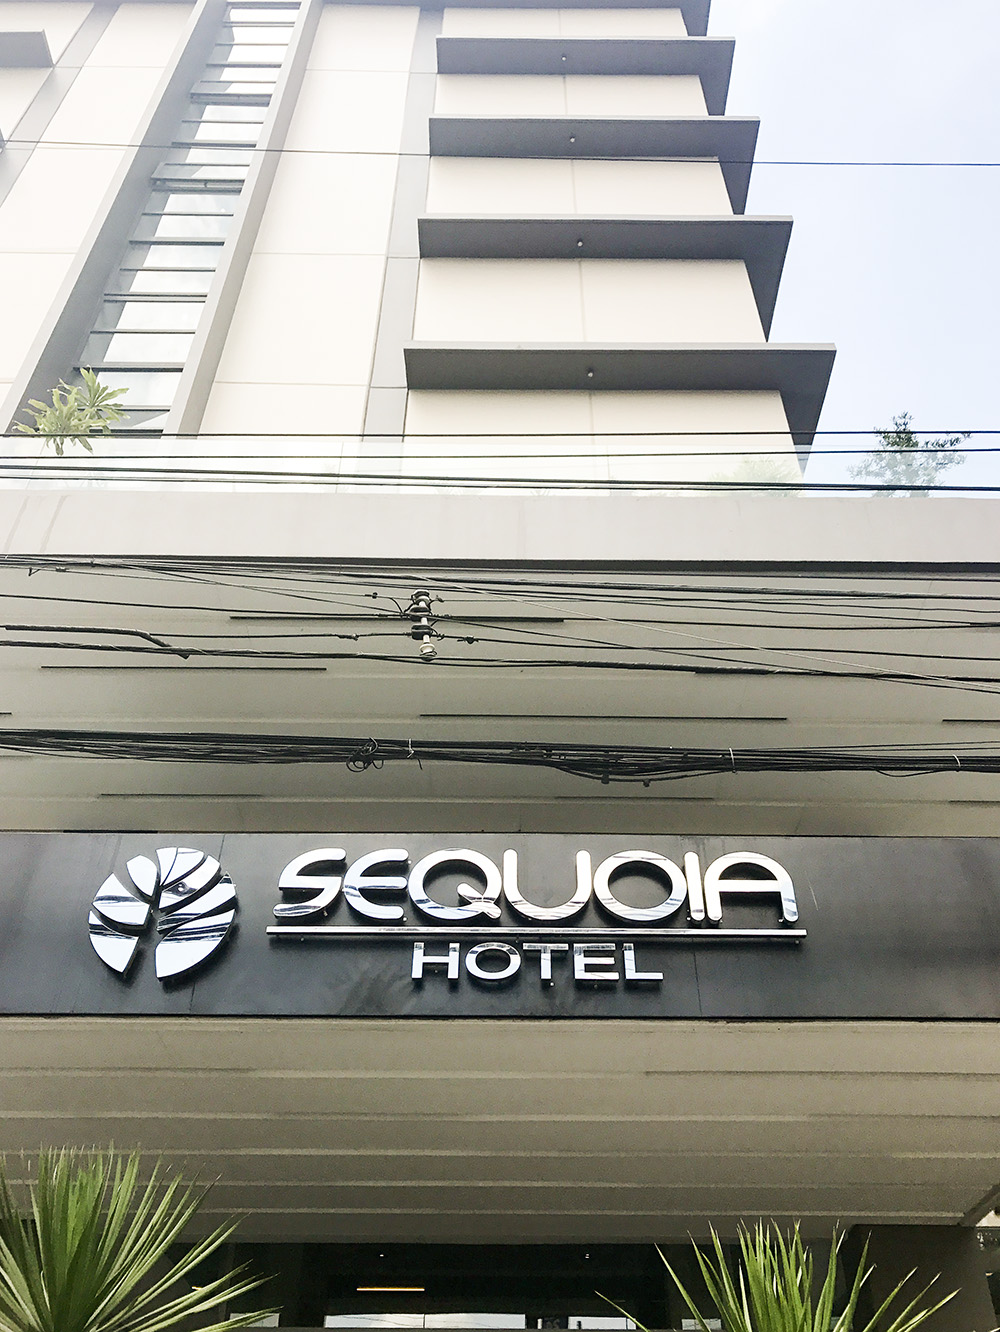 Practical Travelers Choice: Sequoia Hotel